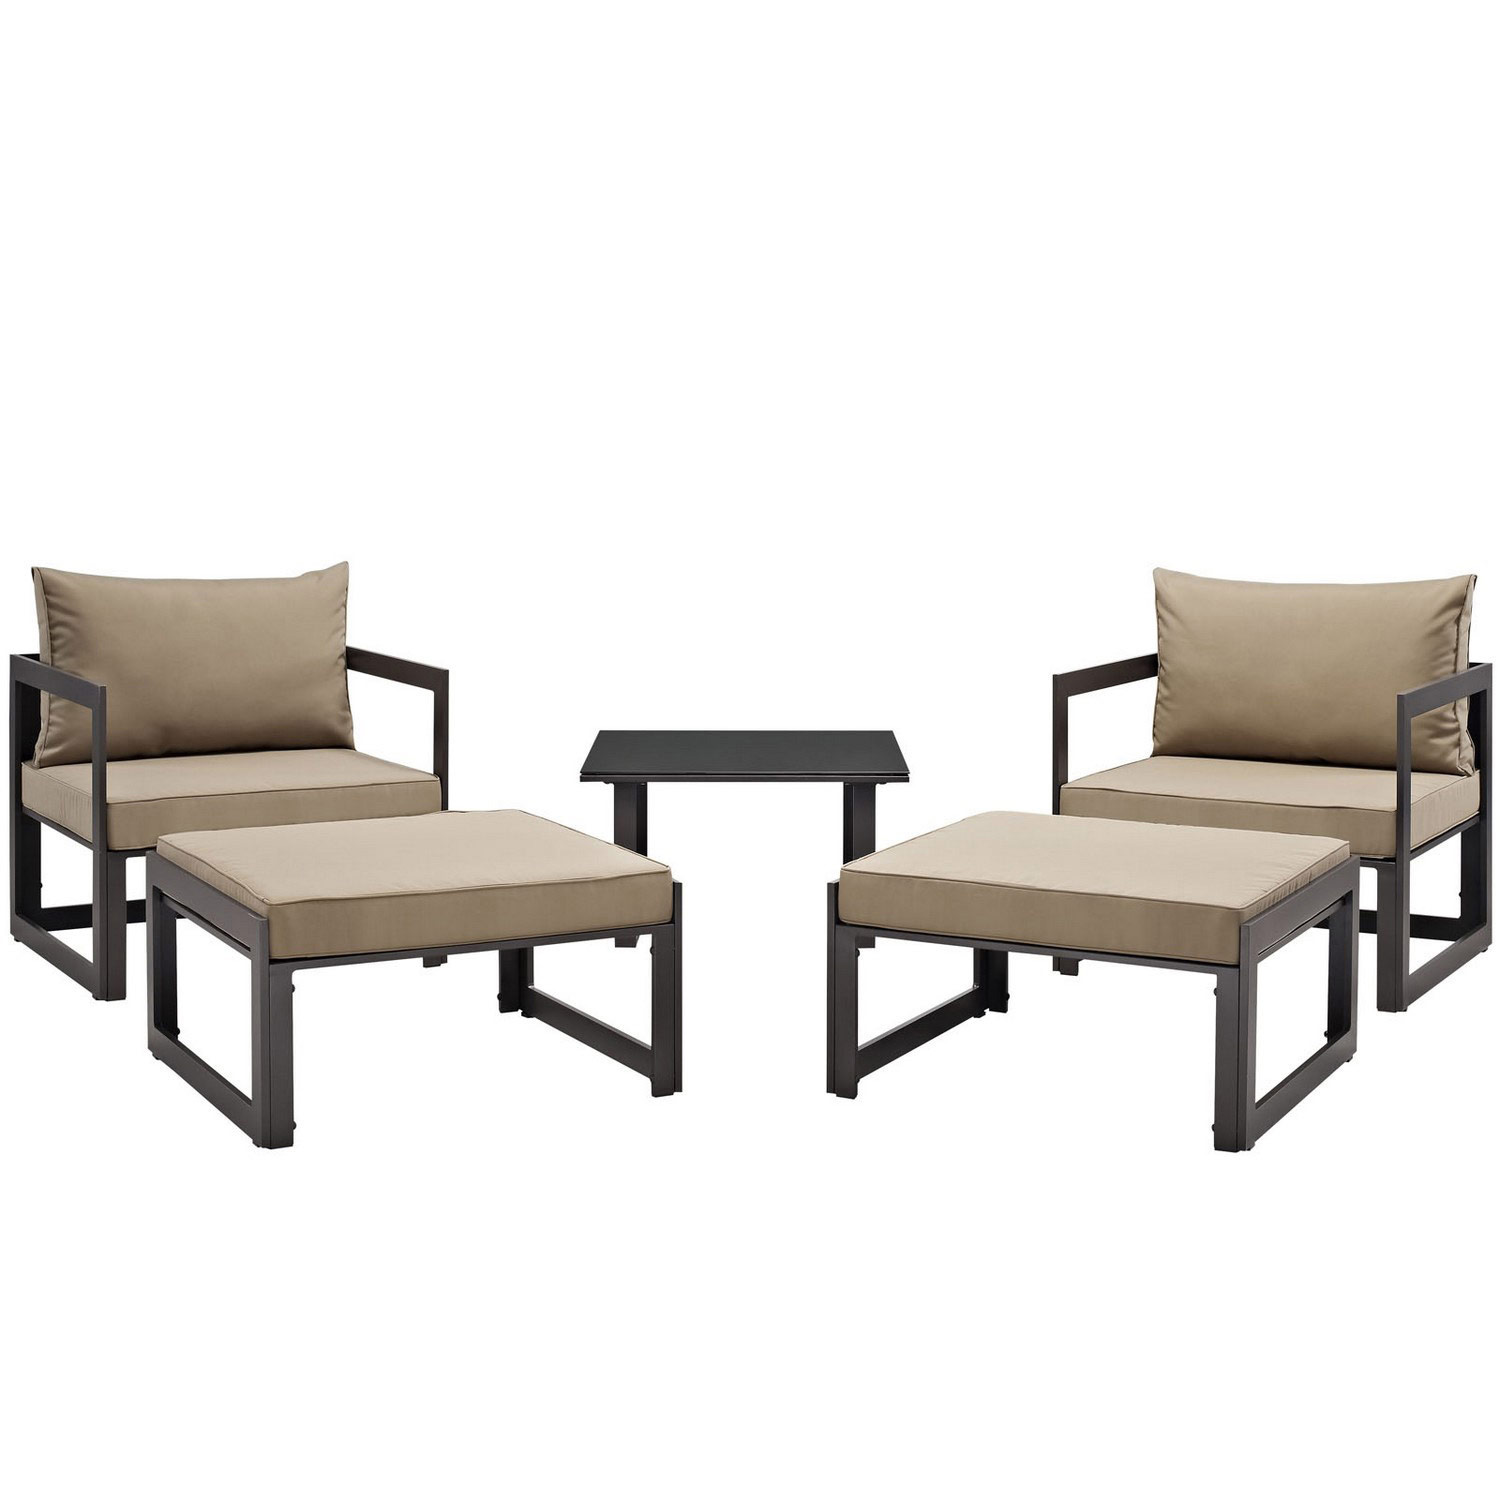 Modway Fortuna 5 Piece Outdoor Patio Sectional Sofa Set - Brown/Mocha